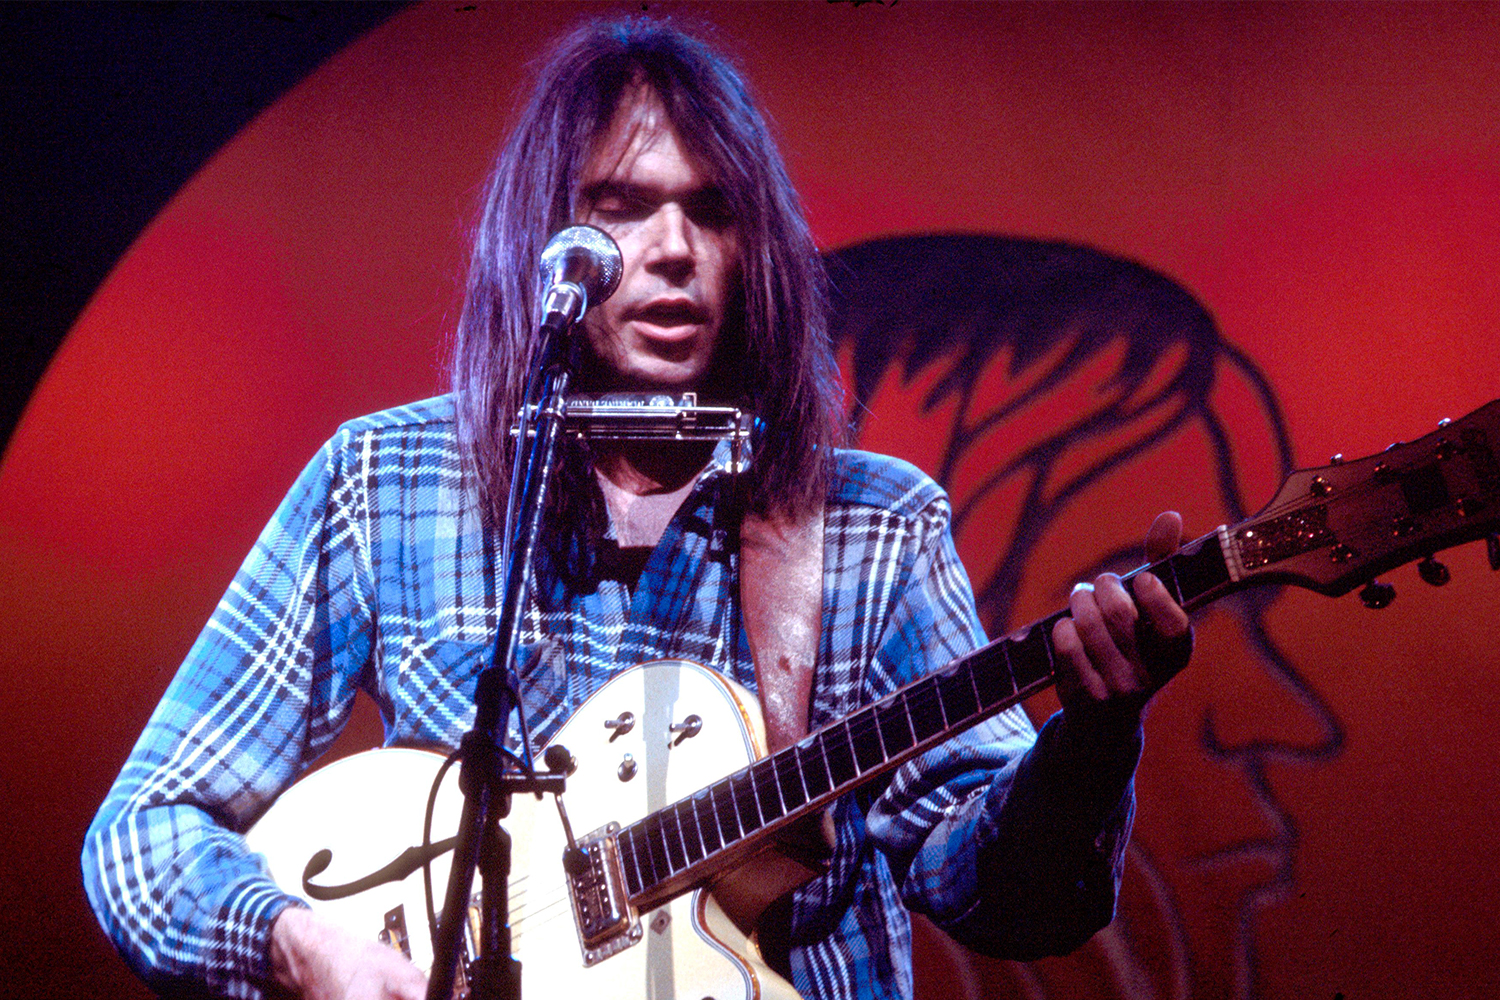 Neil Young performs on stage at Hammersmith Odeon, London, 28th March 1976